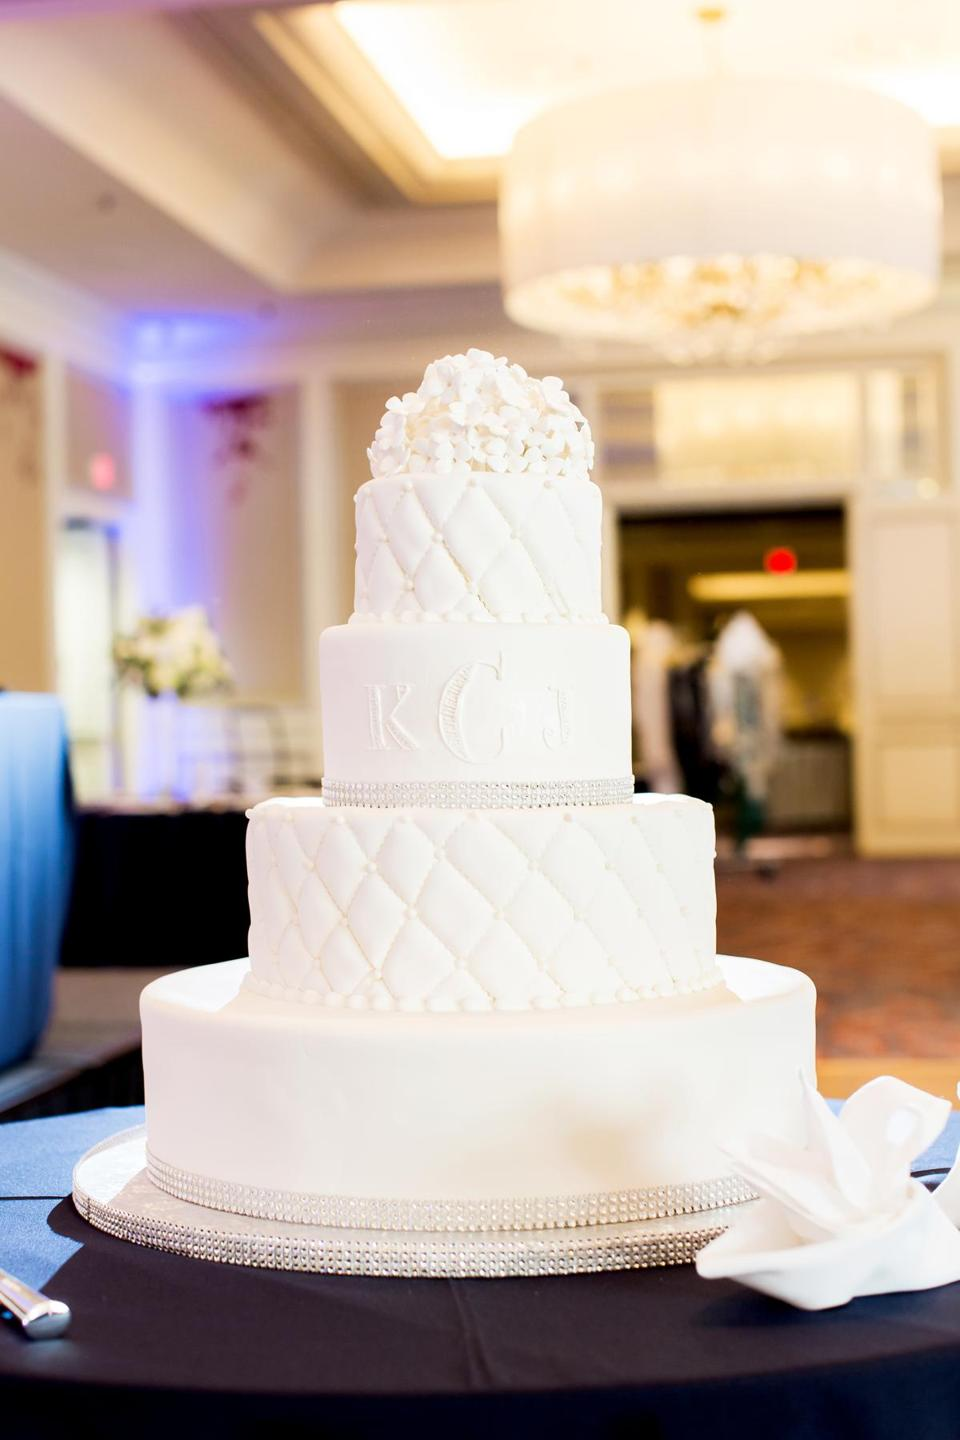 The couple's wedding cake, courtesy of Montilio's Baking Company of Boston.